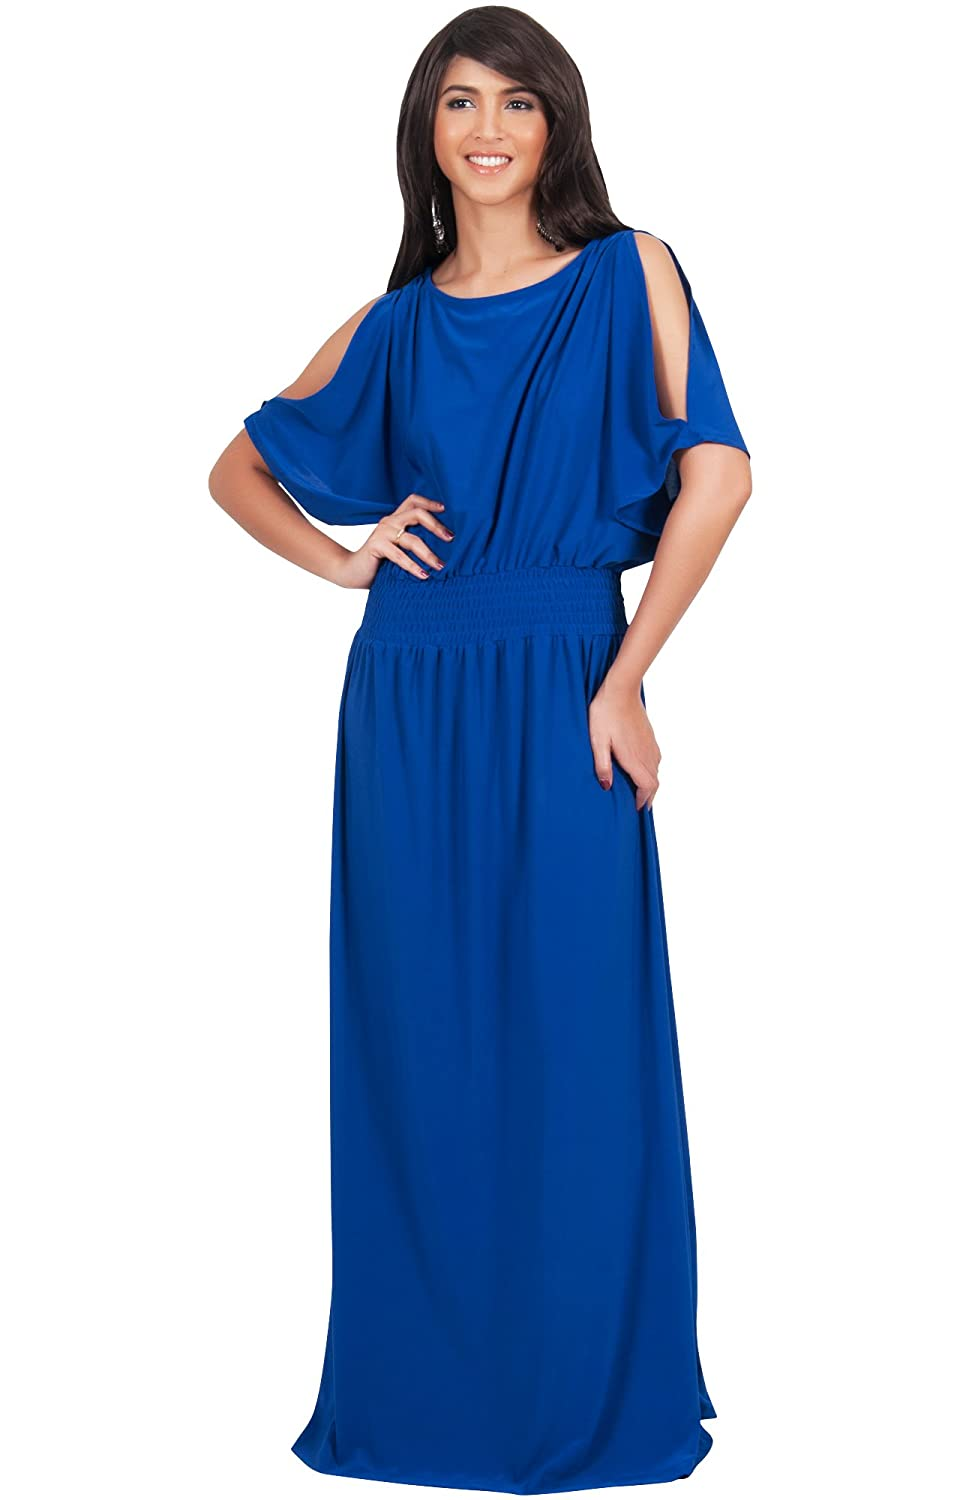 Koh Koh Women's Split Sleeves Smocked Elegant Cocktail Long Maxi Dress - Small - Sapphire Blue at Amazon Women's Clothing store